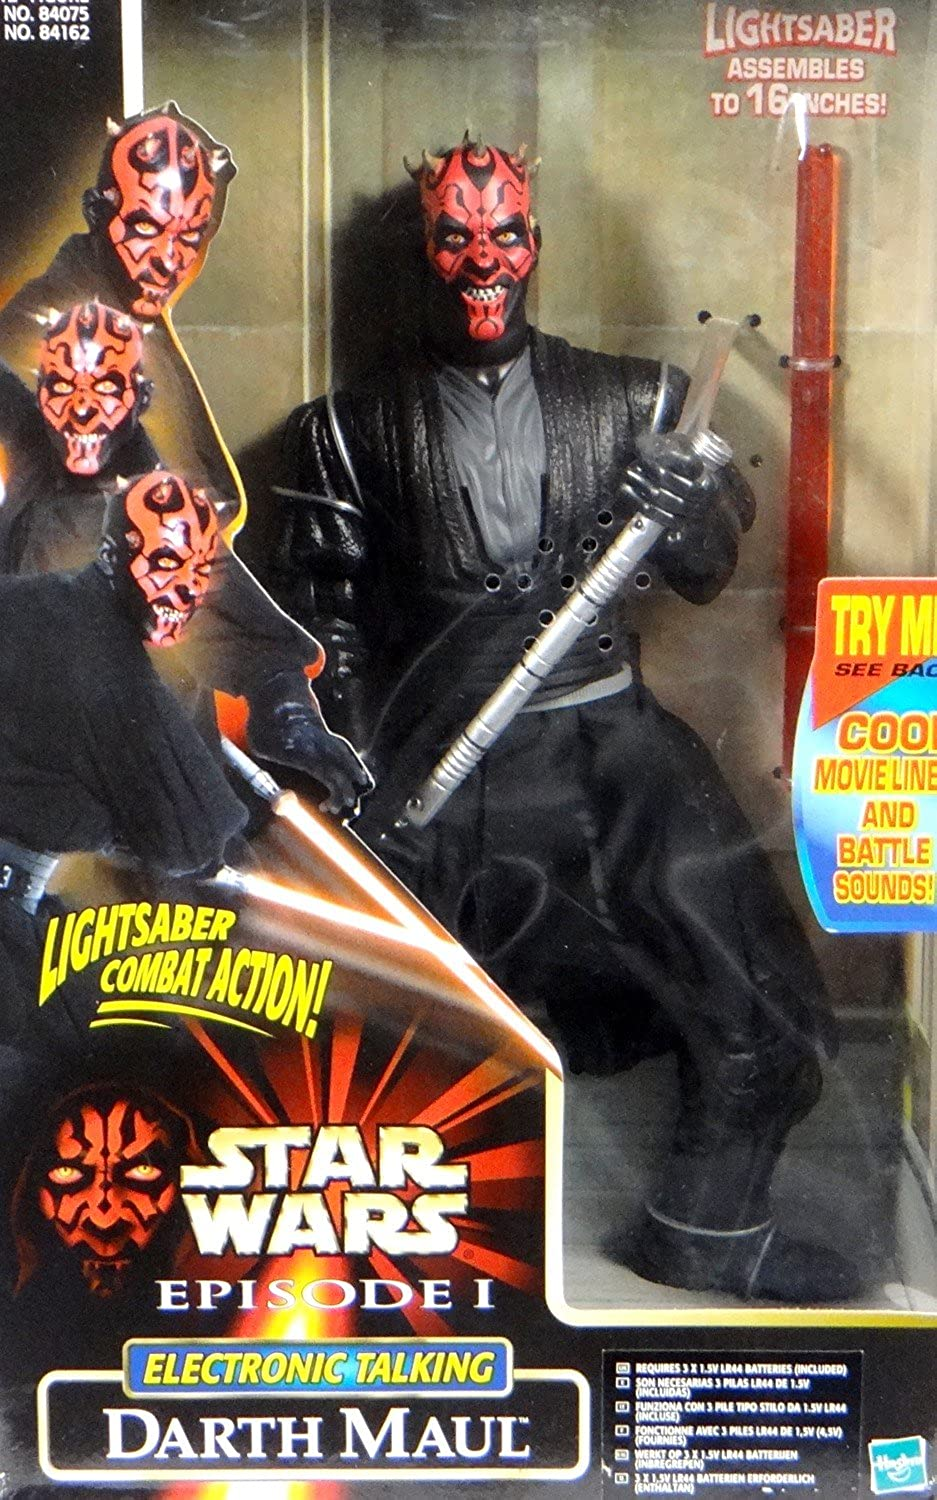 Darth Maul 12  electronic talking figure 12 inch with movie sounds & battle action